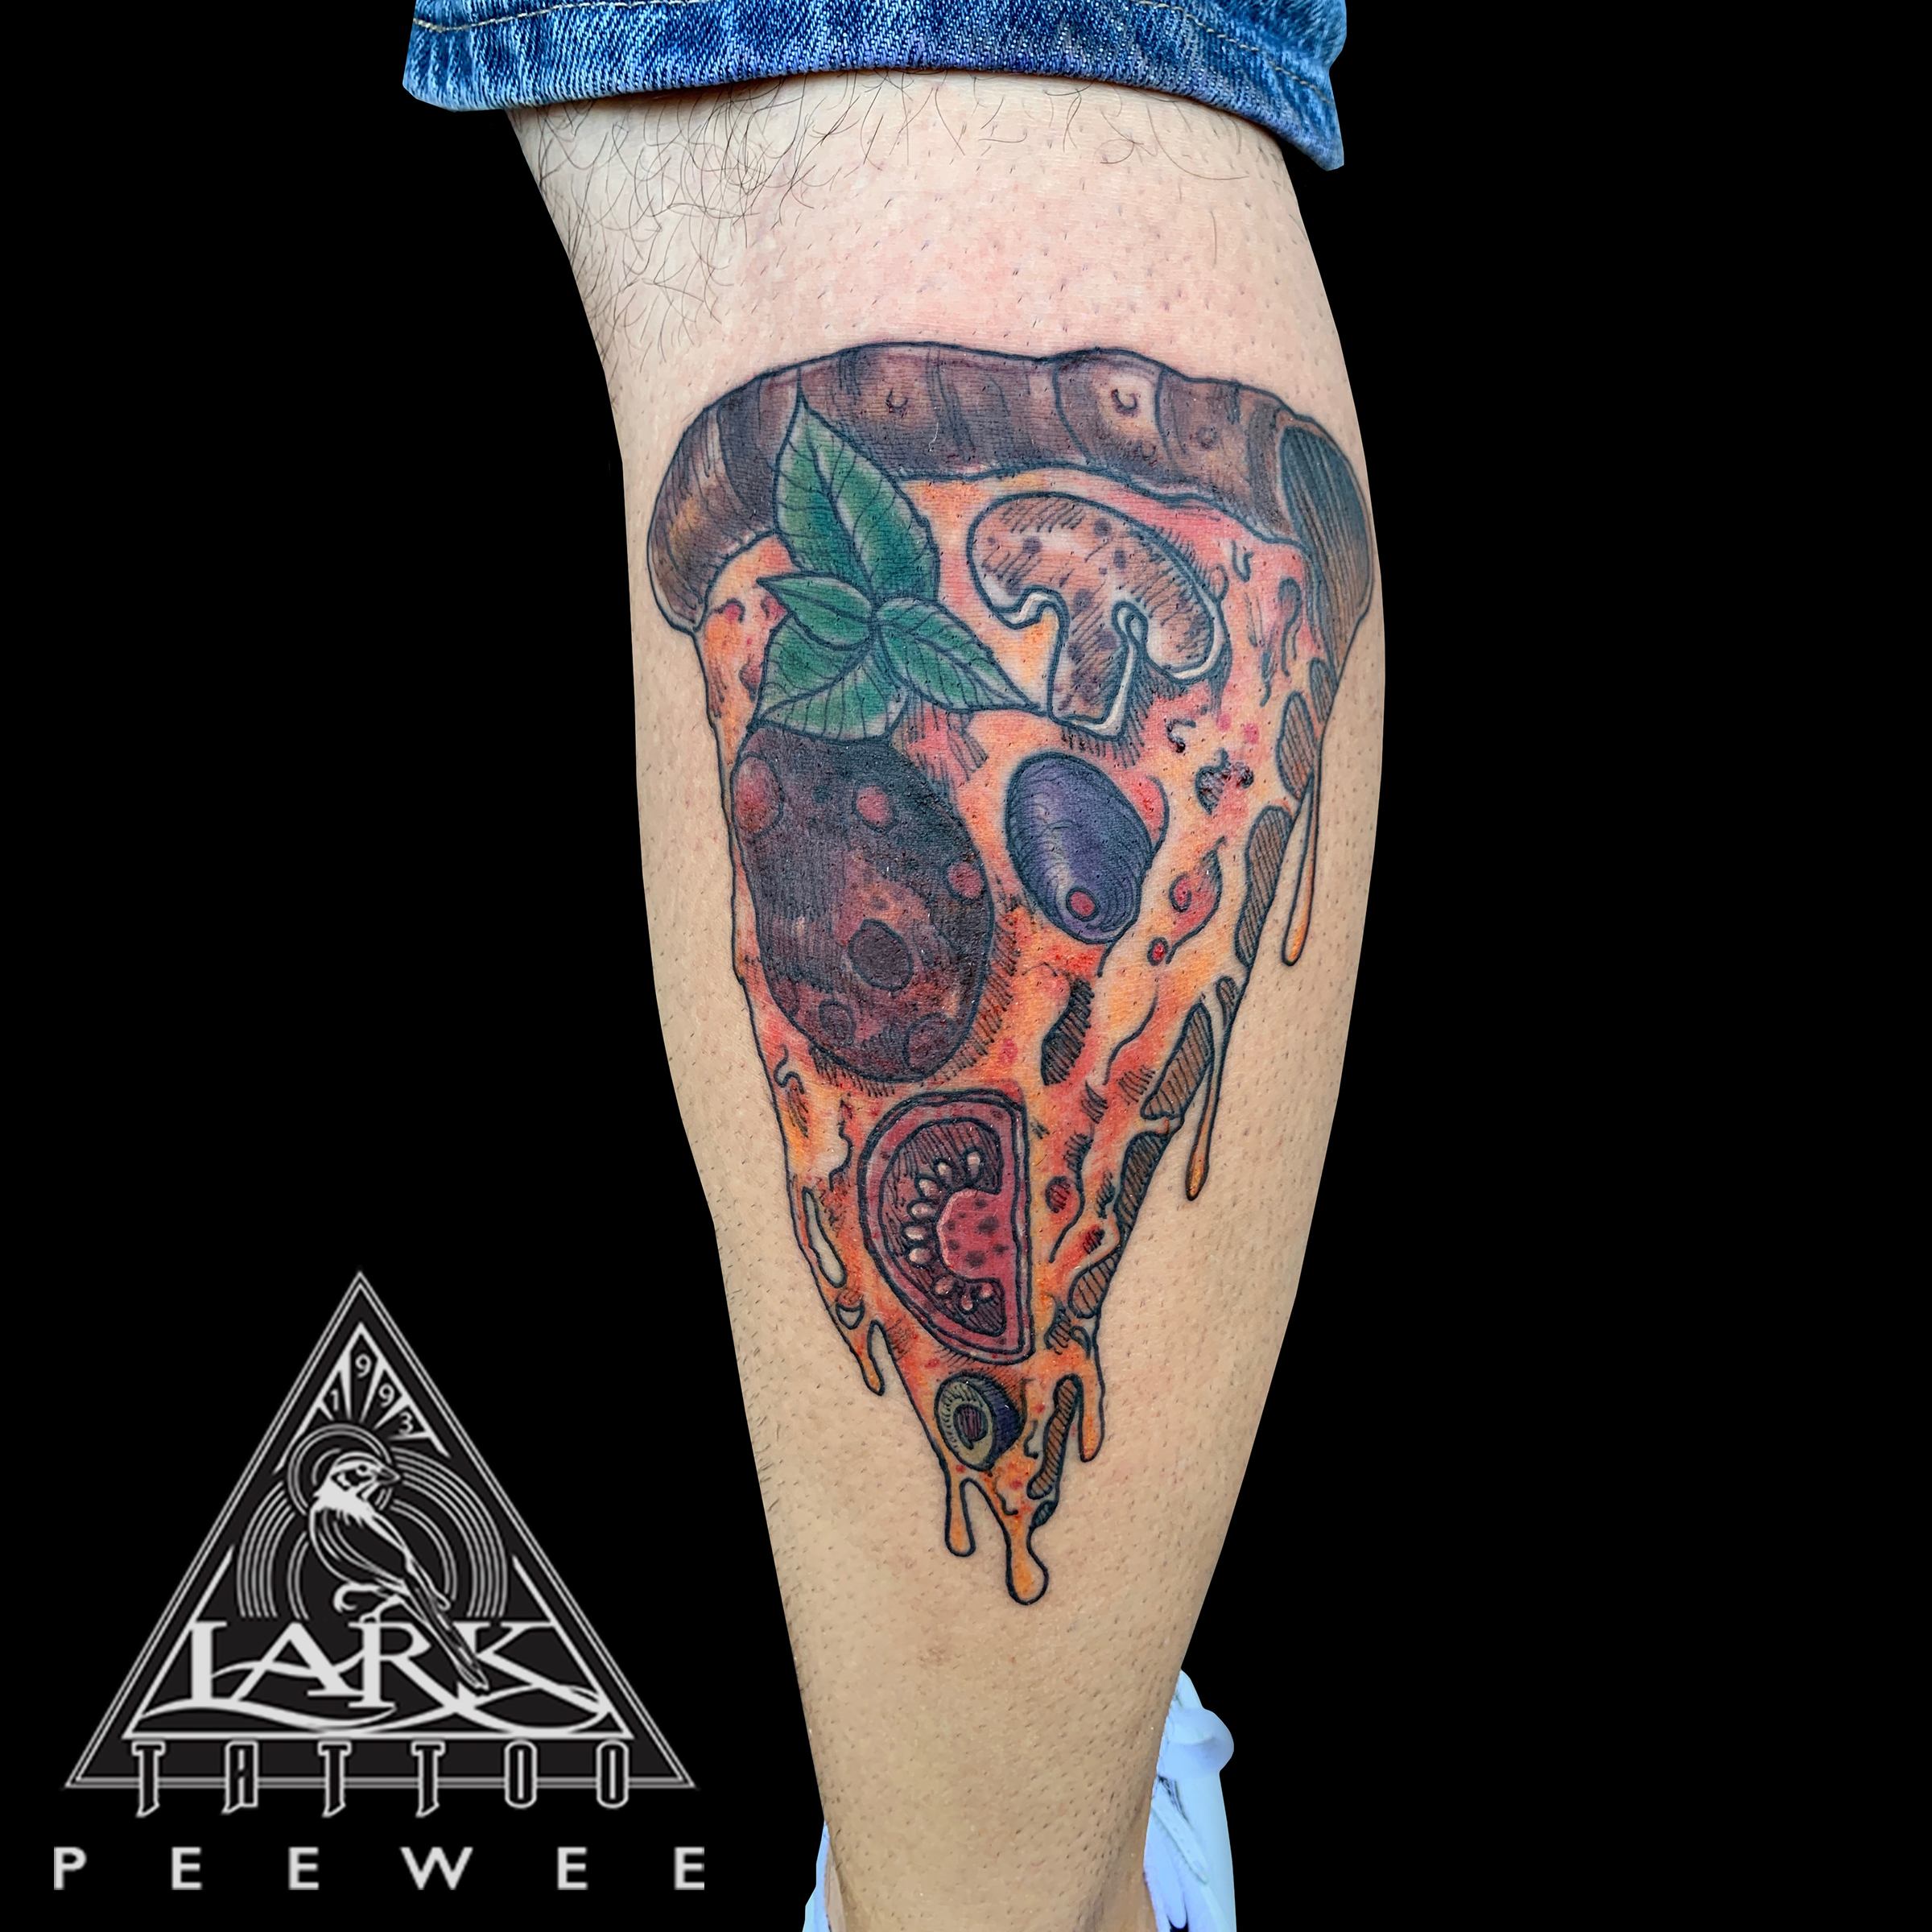 LarkTattoo, Pizza, PizzaTattoo, ColorTattoo, NYTattoo, NYPizza, NYPizzaTattoo, PeeWee, PeeWeeTattoo, PeeWeeLarkTattoo, AnthonyPeeWeeSinerco, AnthonySinerco, Tattoo, Tattoos , TattooArtist, Tattoist, Tattooer, LongIslandTattooArtist, LongIslandTattooer, LongIslandTattoo, TattooOfTheDay, Tat, Tats, Tatts, Tatted, Inked, Ink, TattooInk, AmazingInk, AmazingTattoo, BodyArt, LarkTattooWestbury, Westbury, LongIsland, NY, NewYork, USA, Art, Tattedup, InkedUp, LarkTattoos